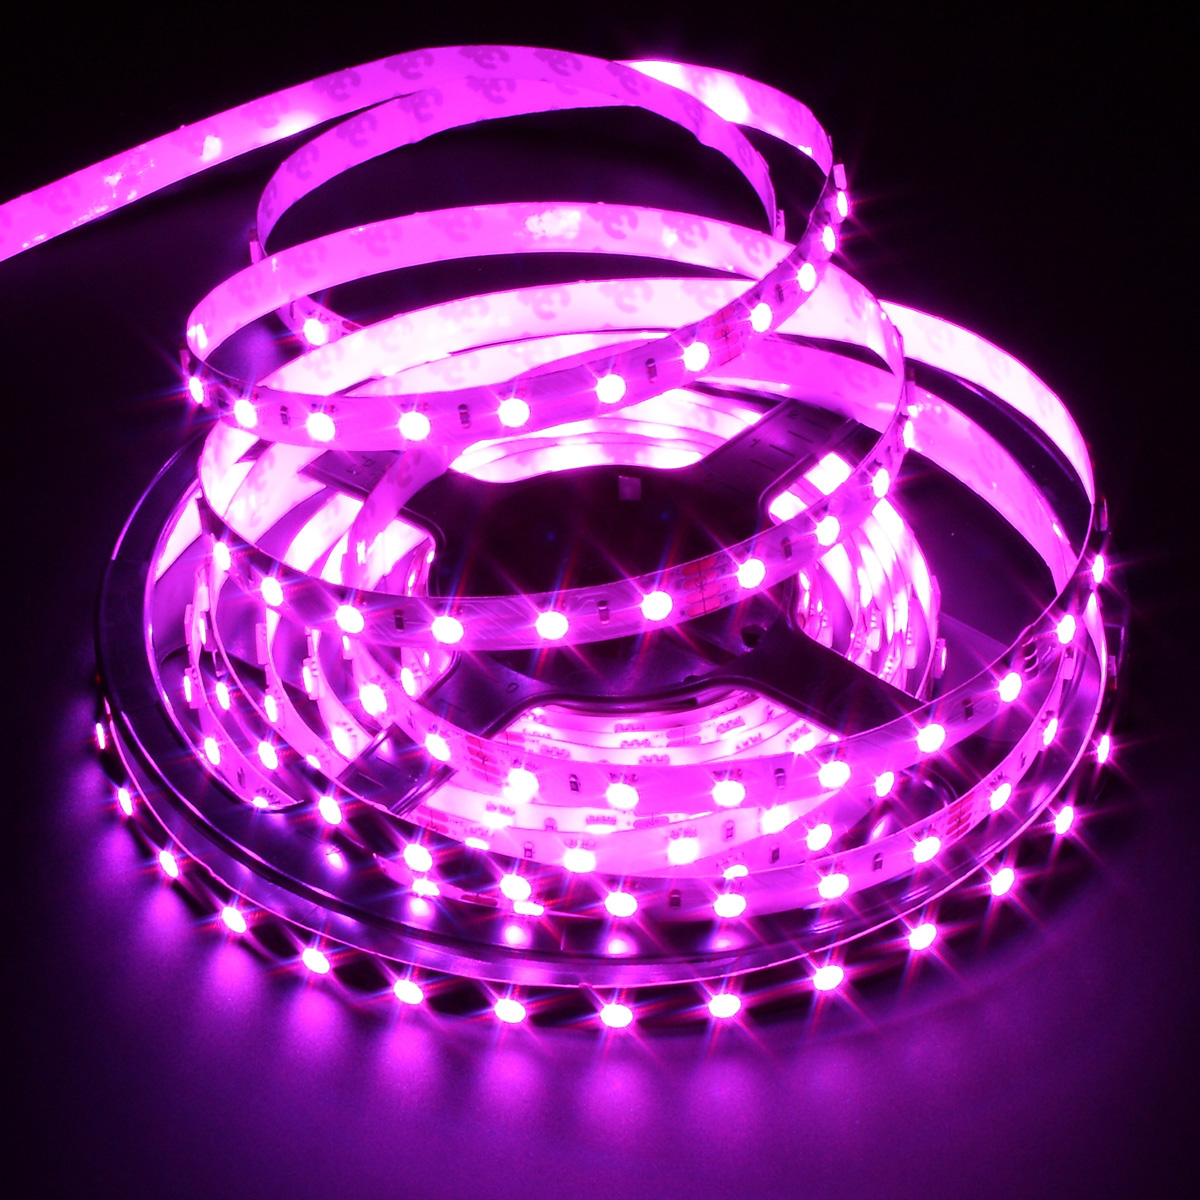 Color Changing Led Light Strips: Color Changing RGB 5050 72W LED Strip Light